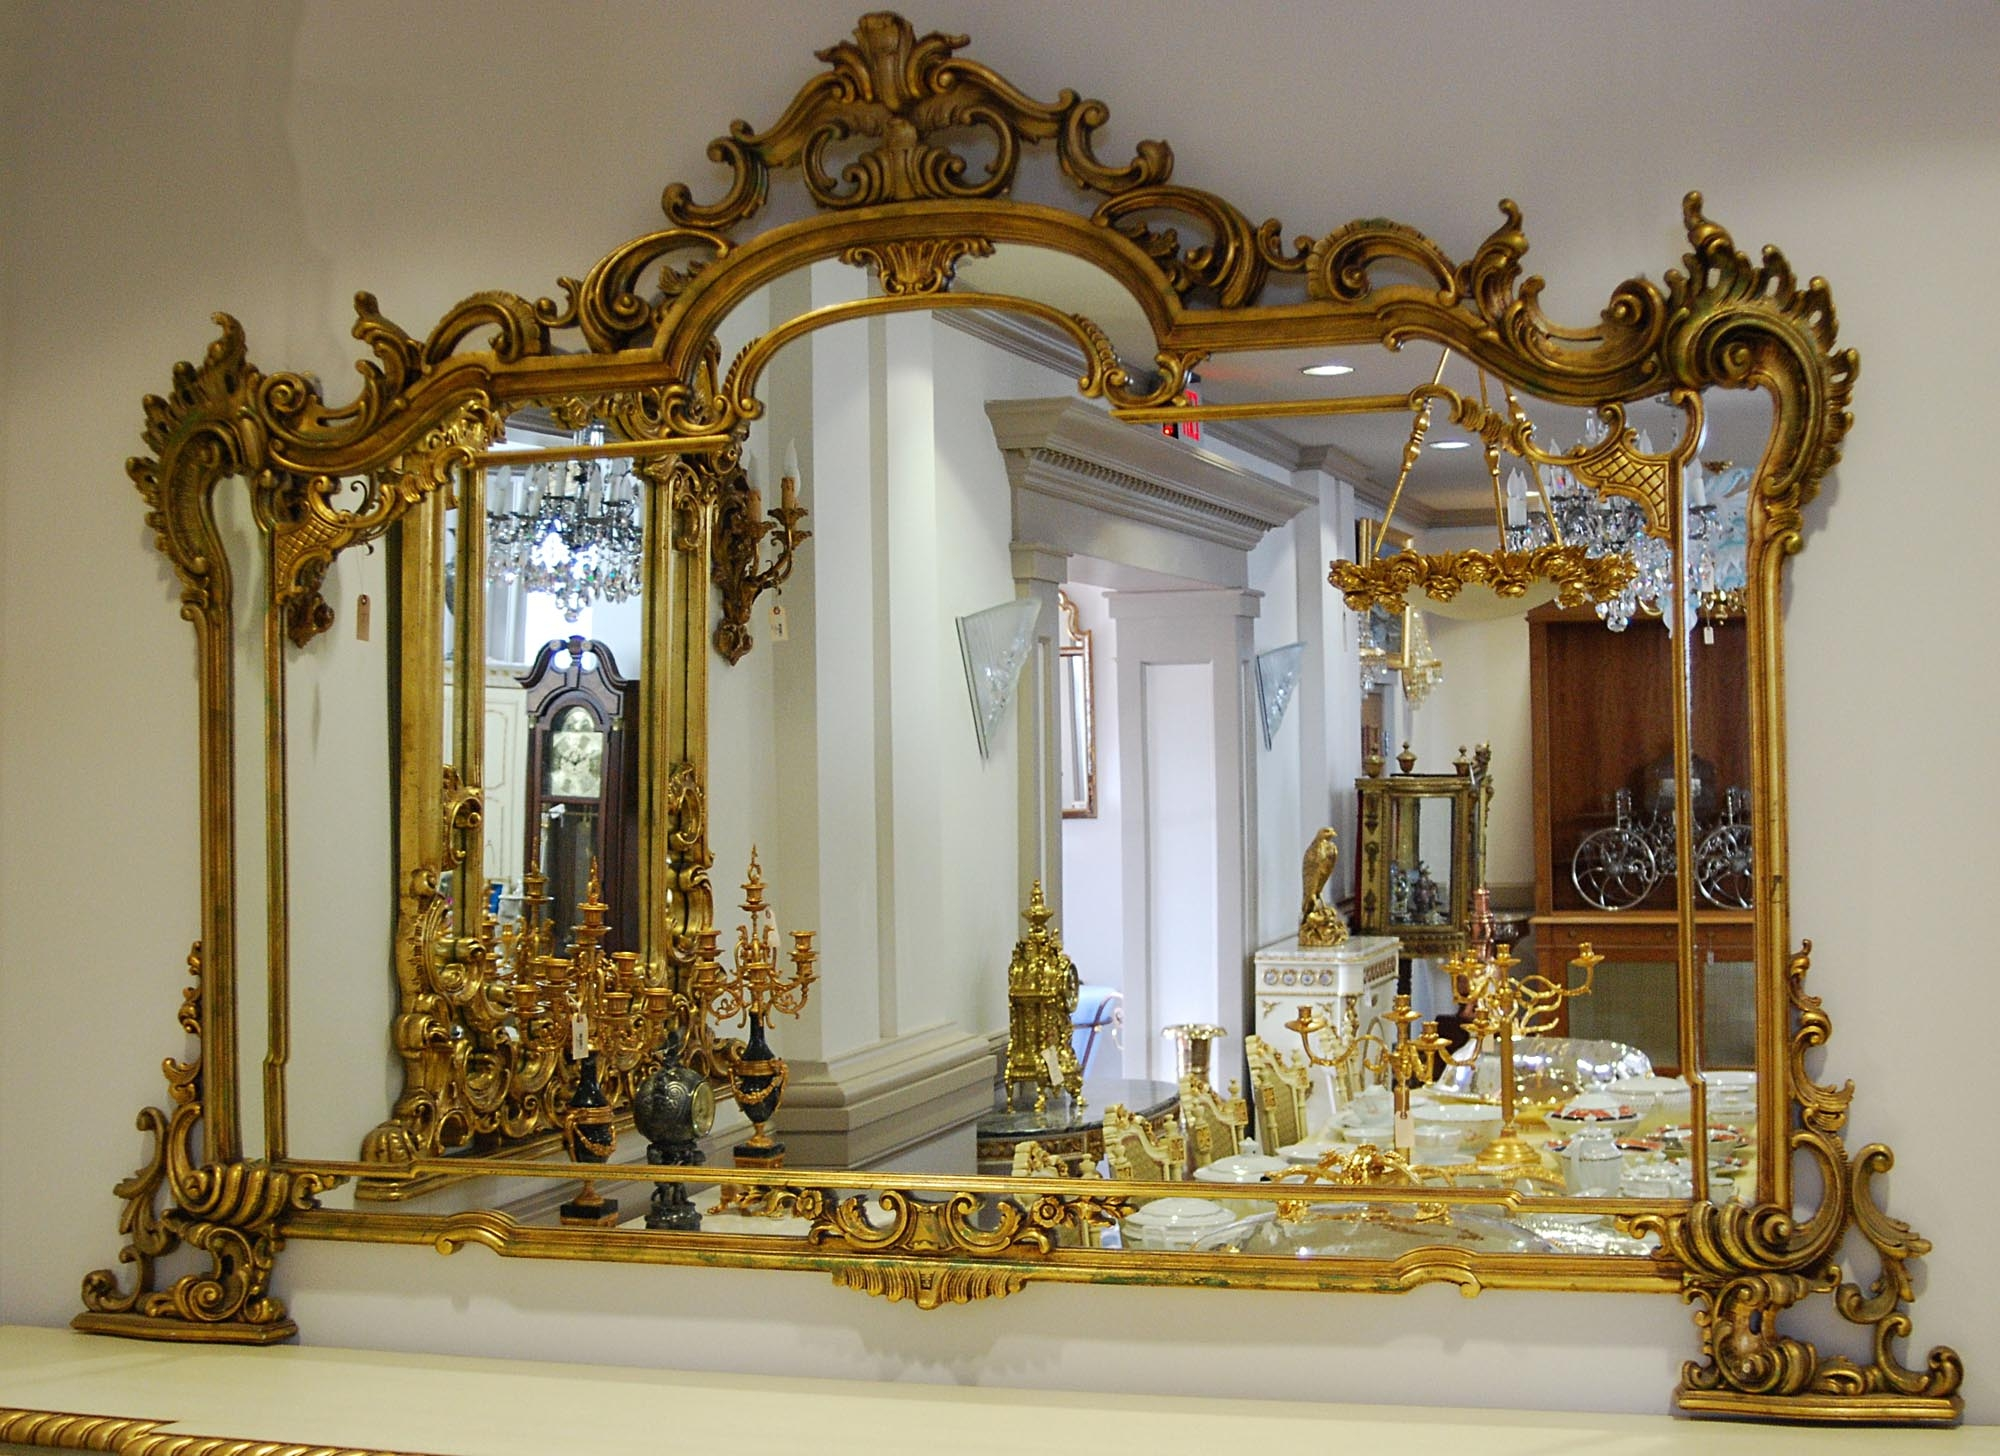 Italian Rococo Mirror Stuff To Buy Pinterest Architecture Throughout Rococo Mirrors Cheap (View 3 of 15)